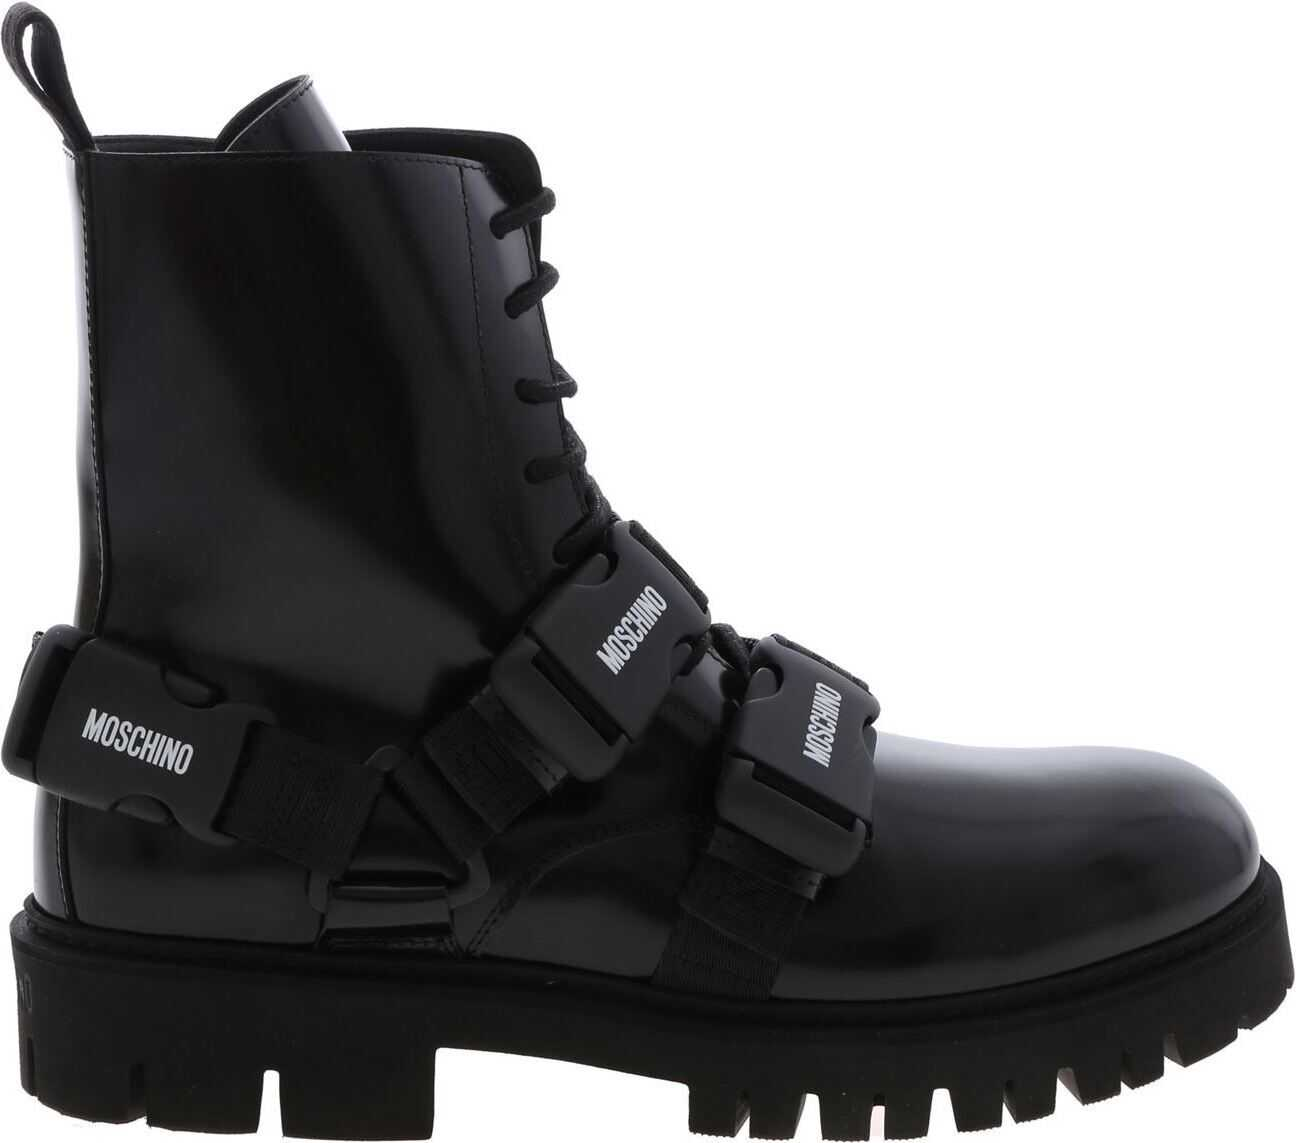 Moschino Black Ankle Boots With Straps Black